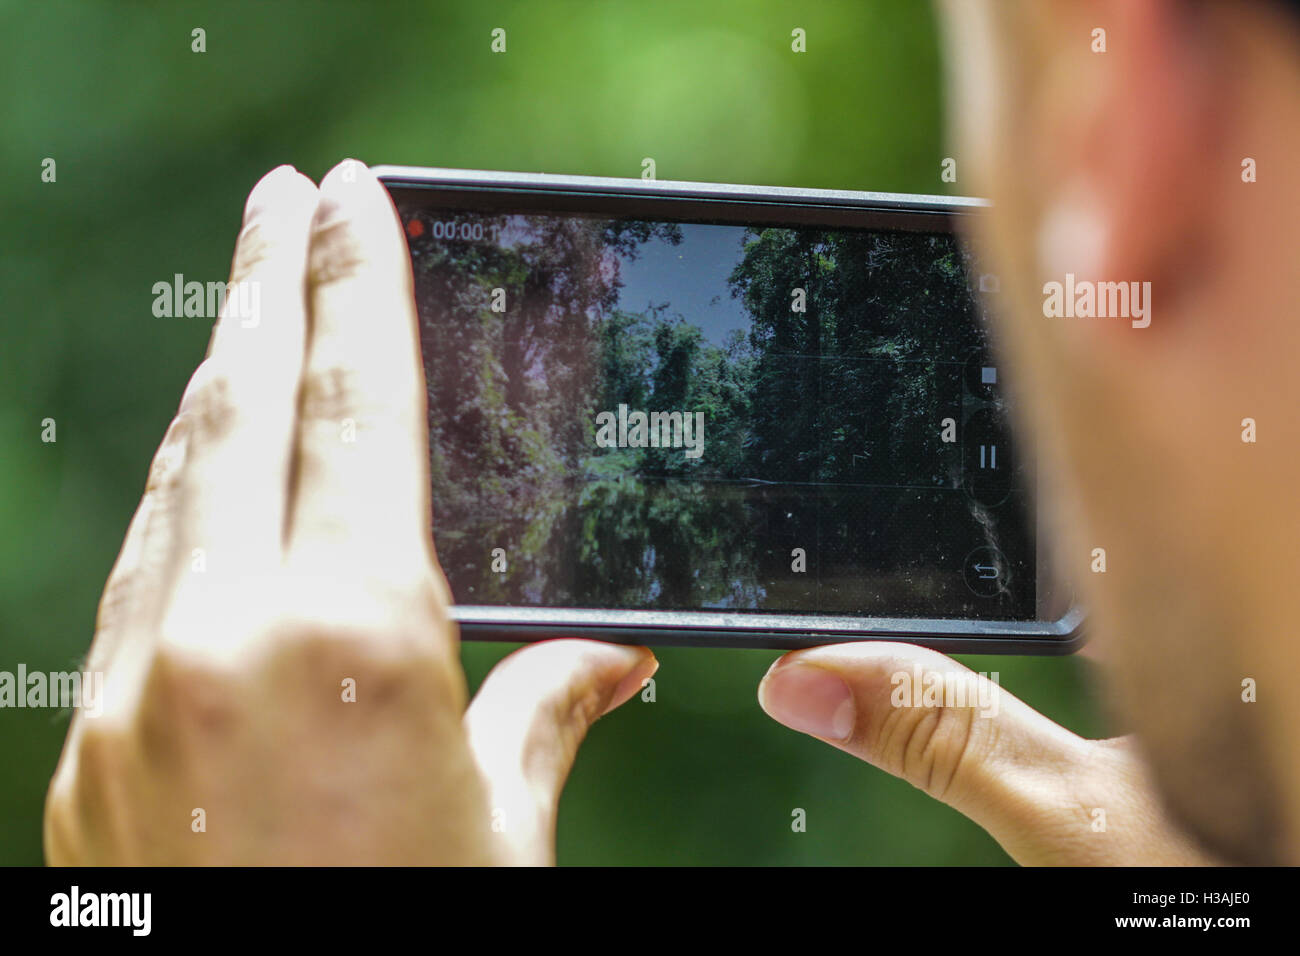 Young tourist is using his smartphone to capture and image and find his location in the mountains - Stock Image